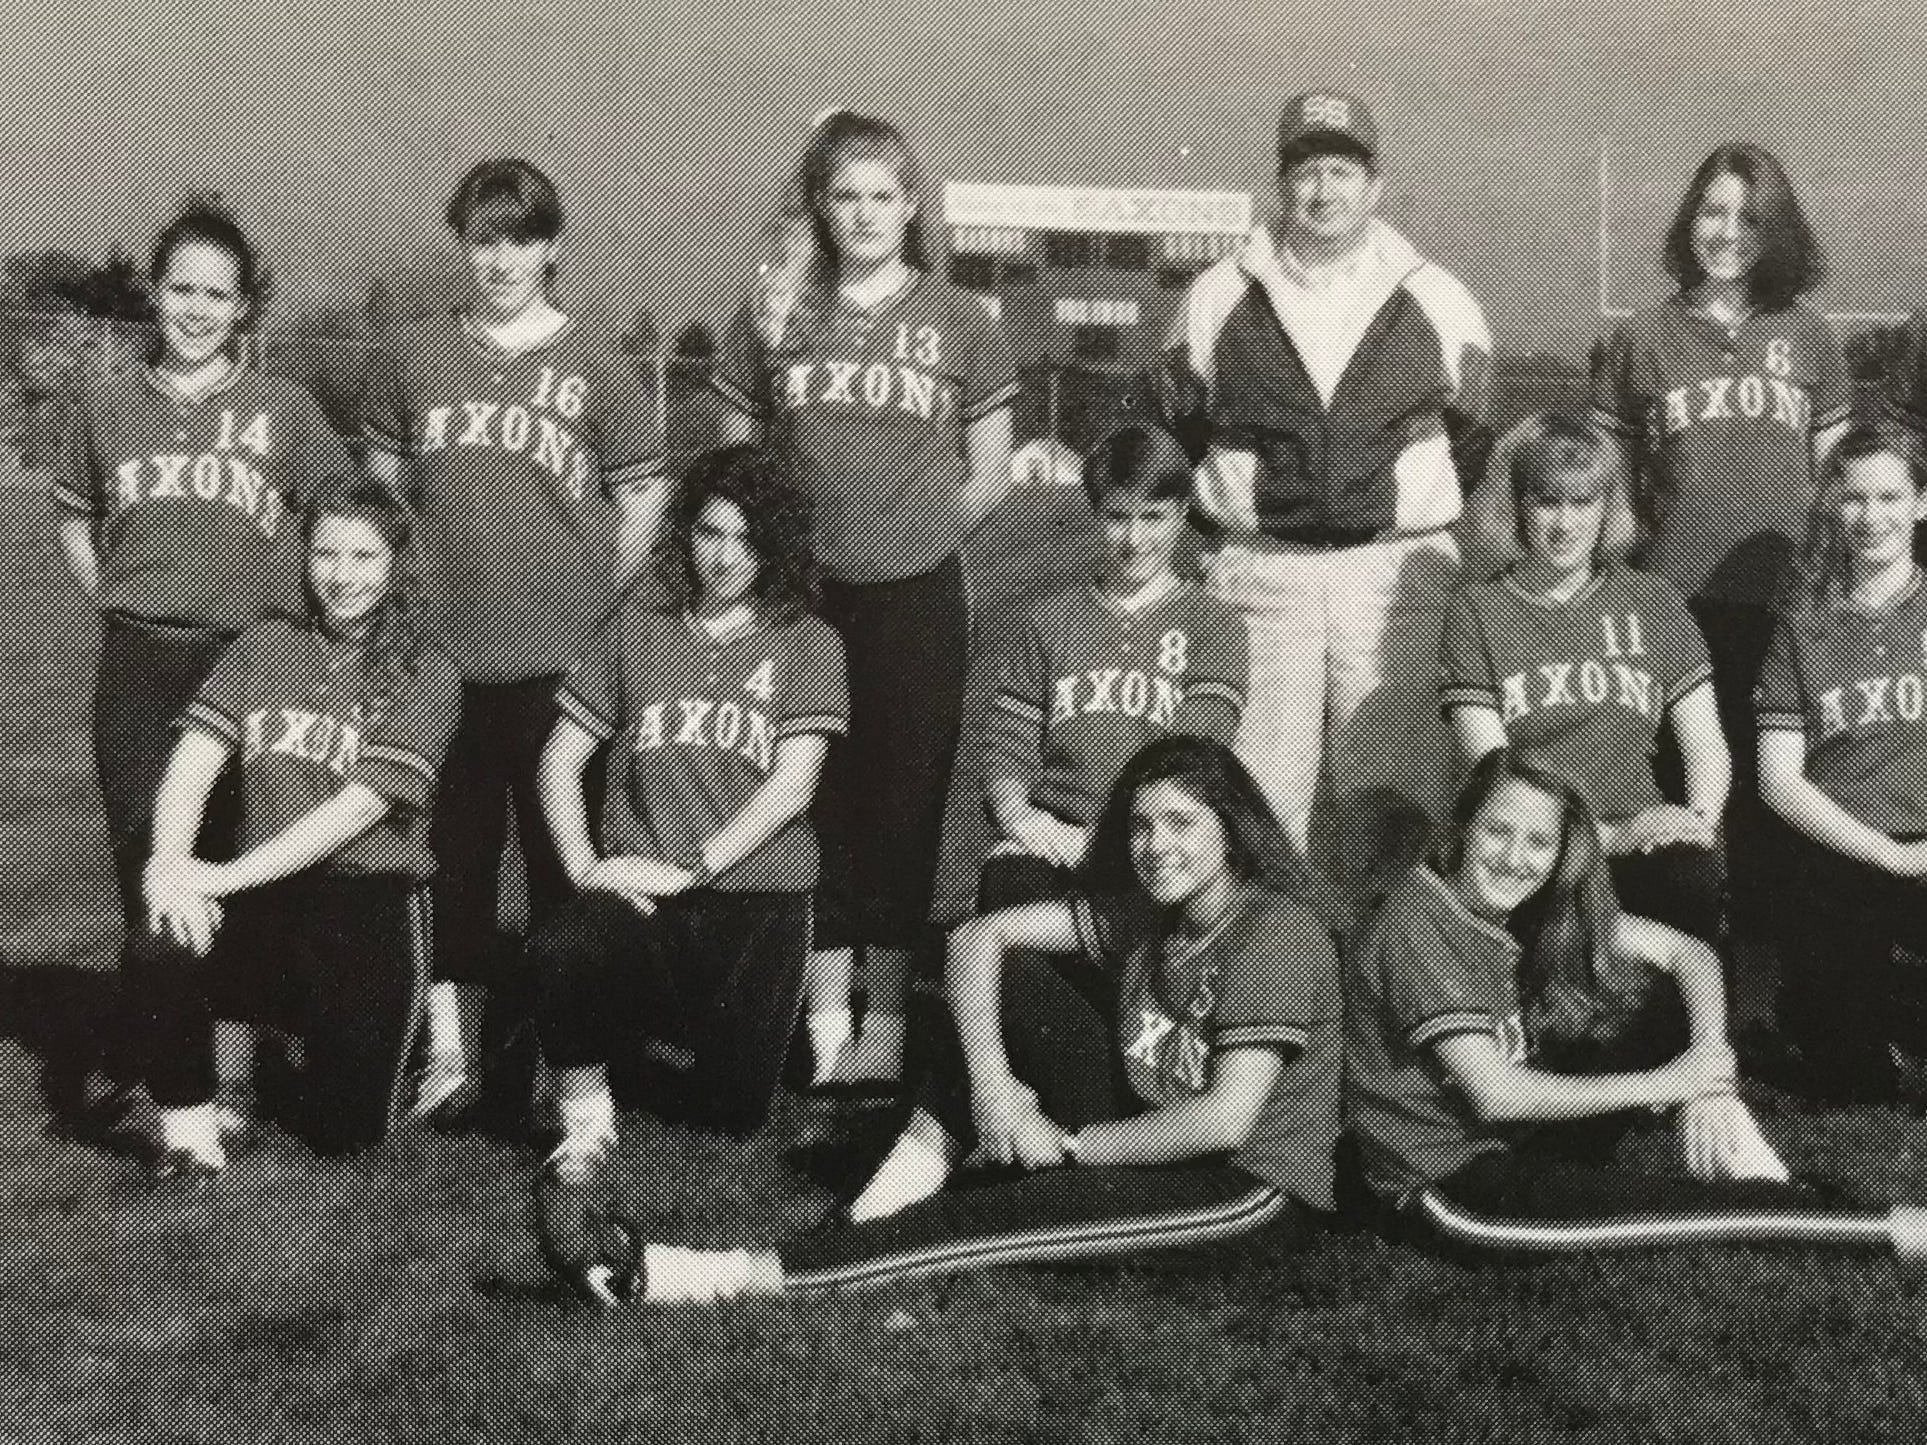 Jamie Davidson, second row, first from the left, played softball at South Salem High School as a freshman in 1992.